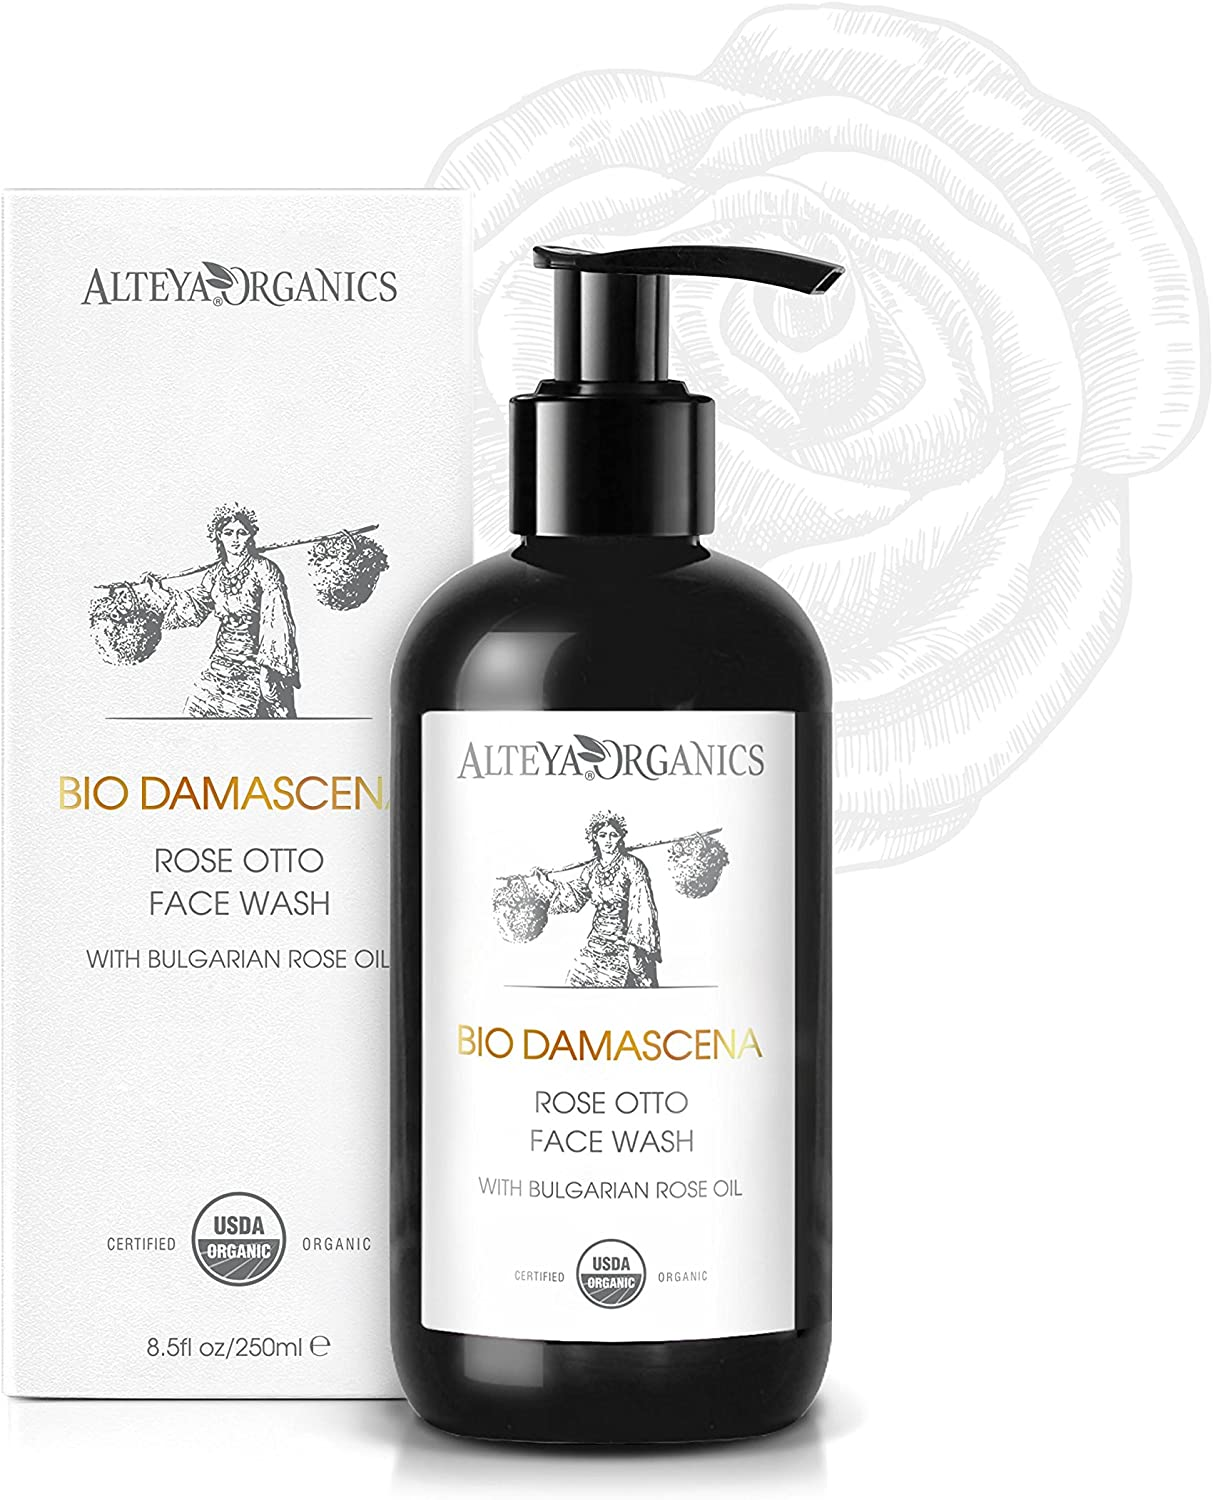 "Alteya USDA Organic Face Wash ""BioDamascena"" - With Organic Bulgarian Rose Oil, Award-Winning, 8.5 Fl Oz/ 250ml"